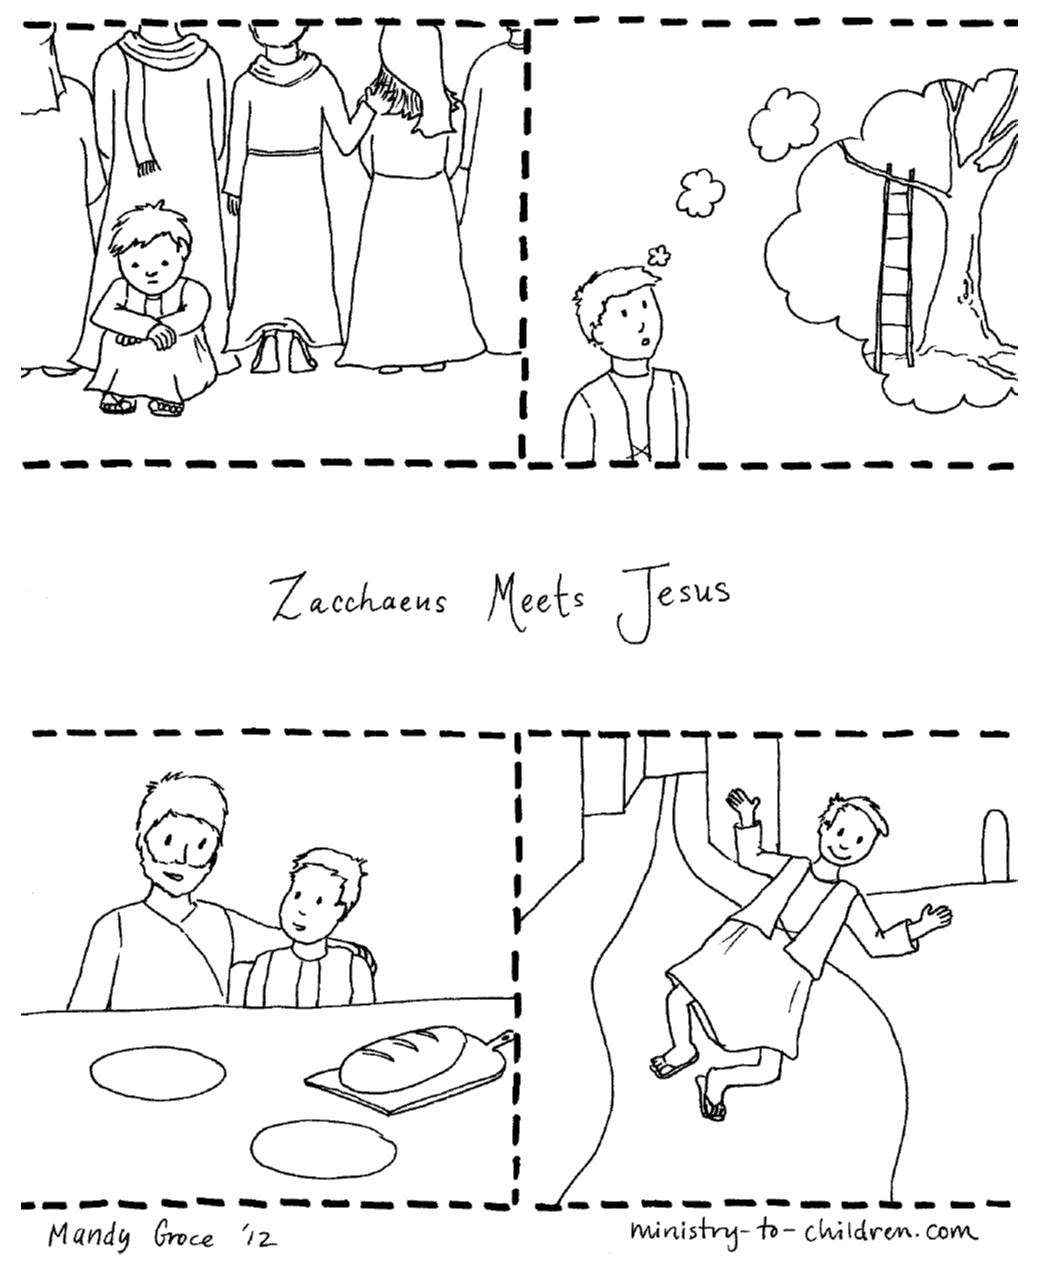 coloring pages zaccheus jesus and zacchaeus coloring page pictures - Jesus Zacchaeus Coloring Page